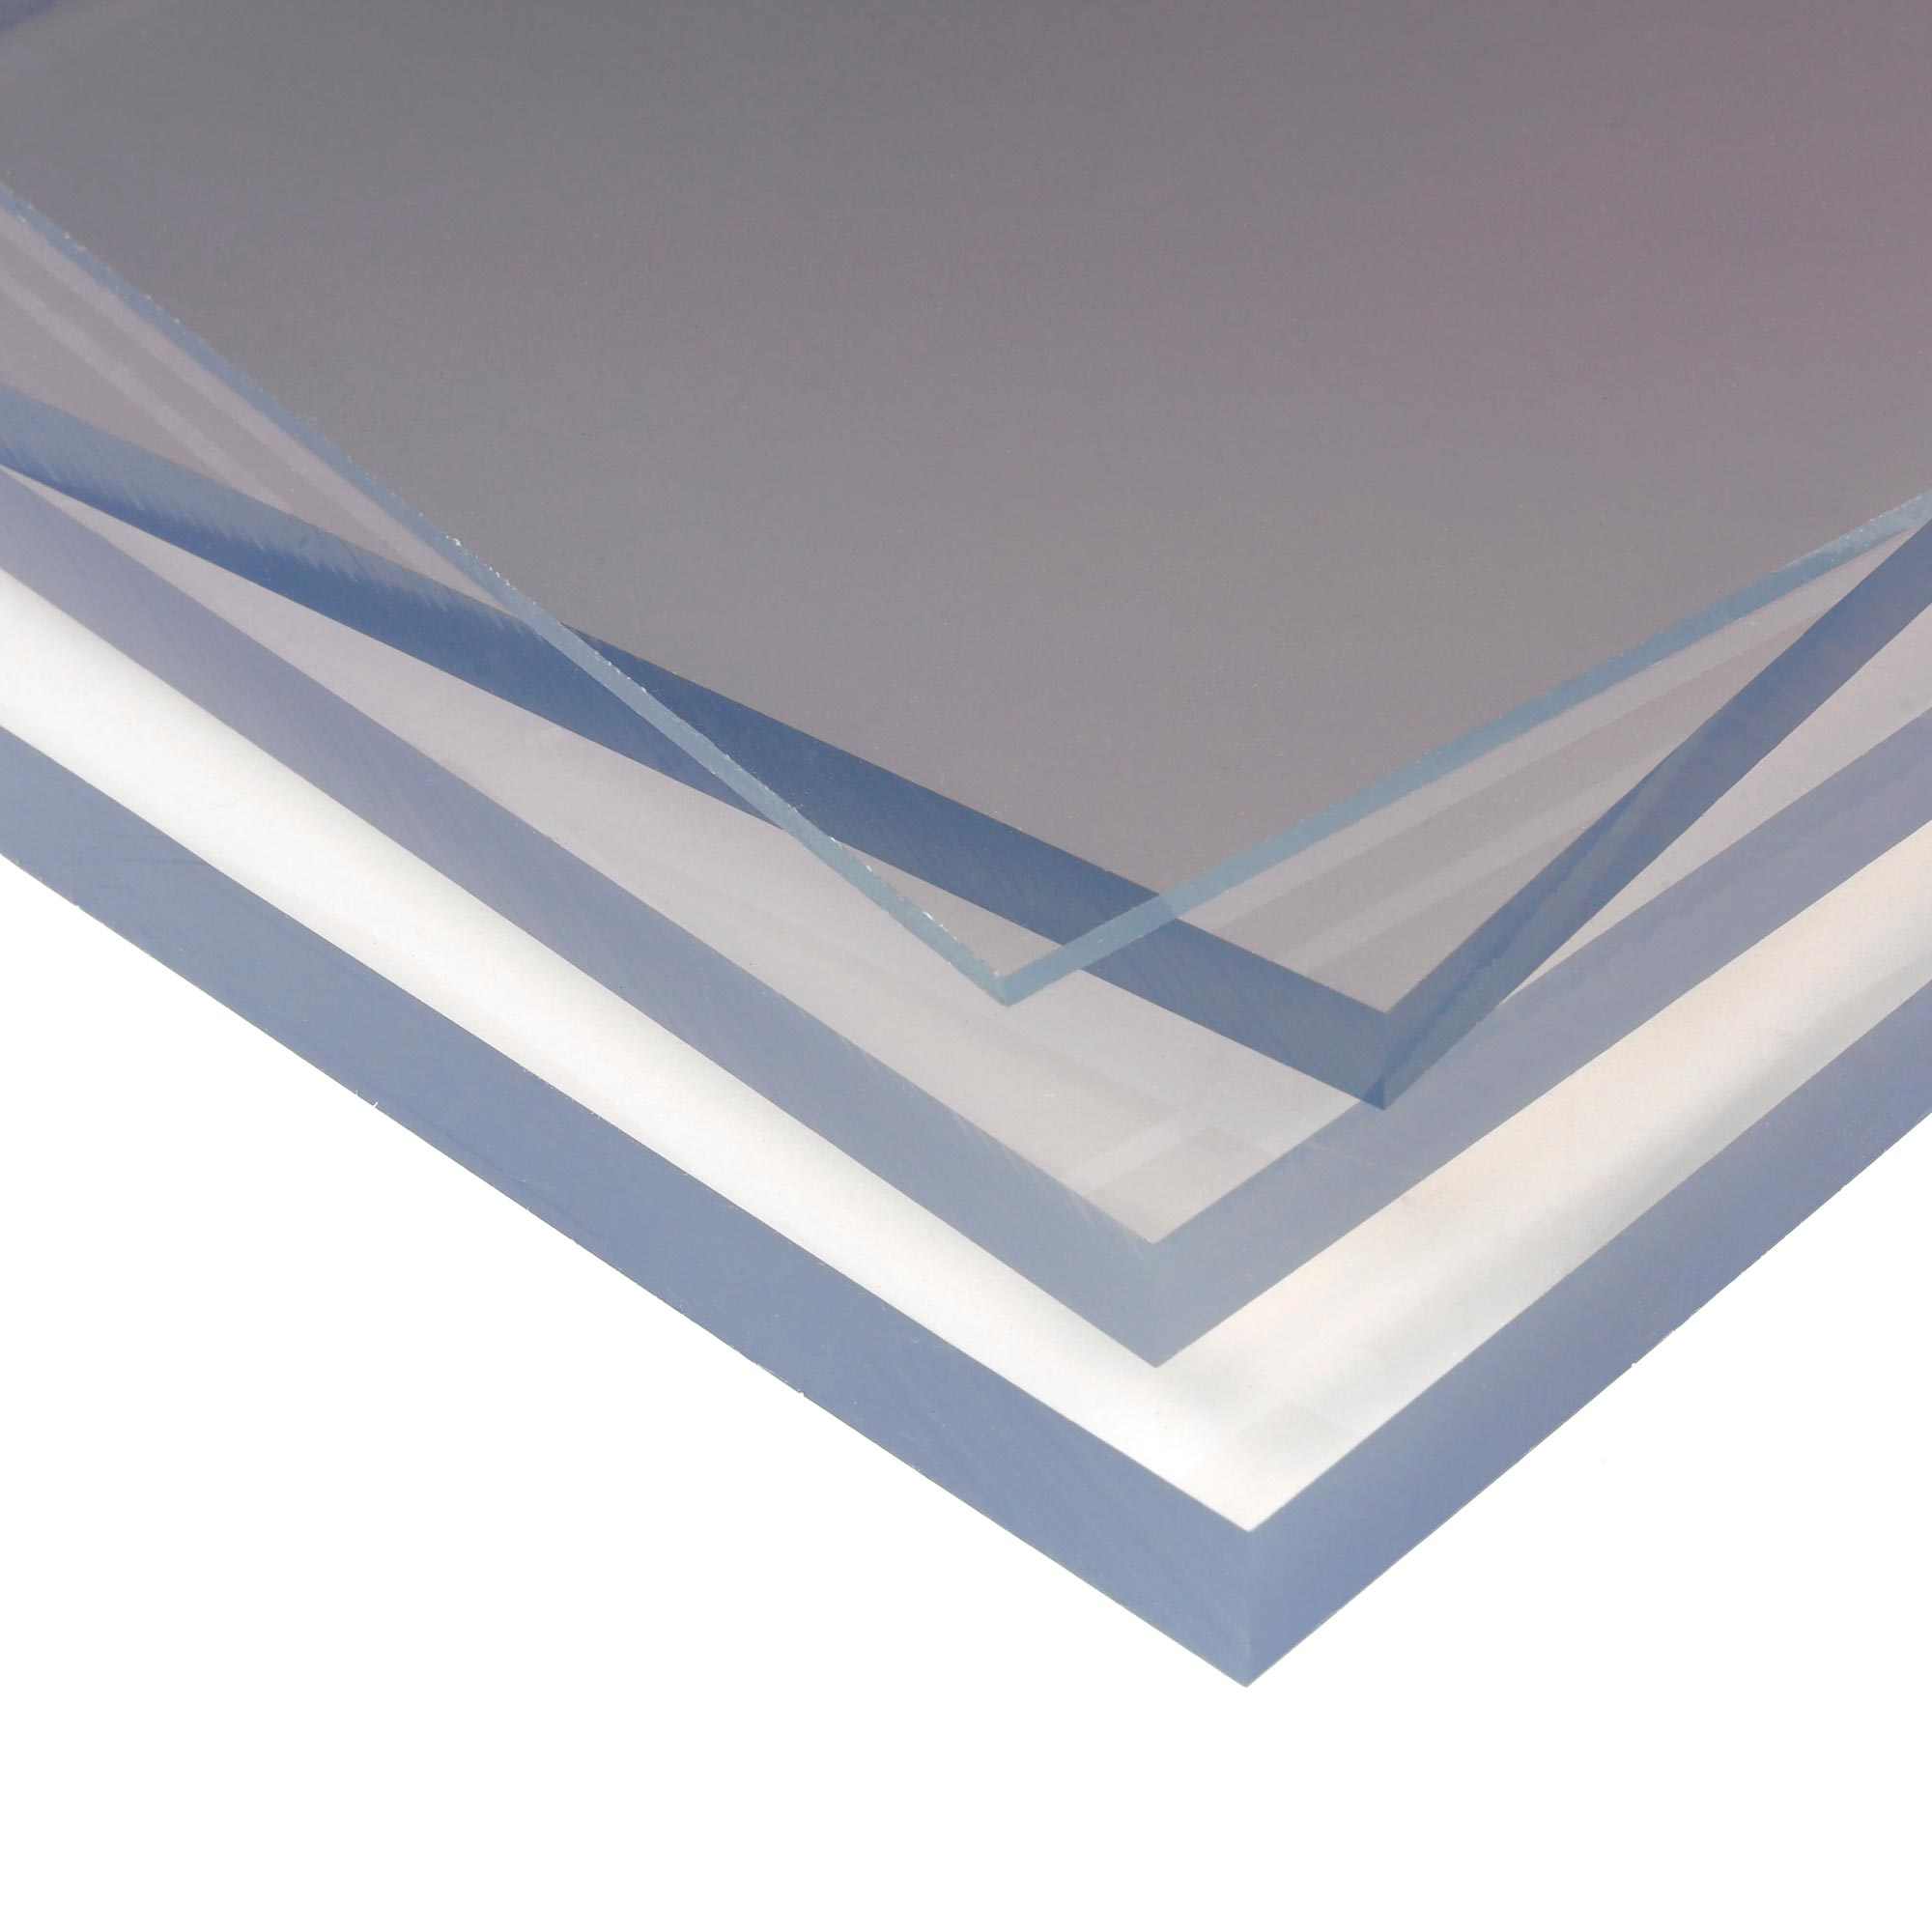 Cut to Size Plastic Sheeting #2